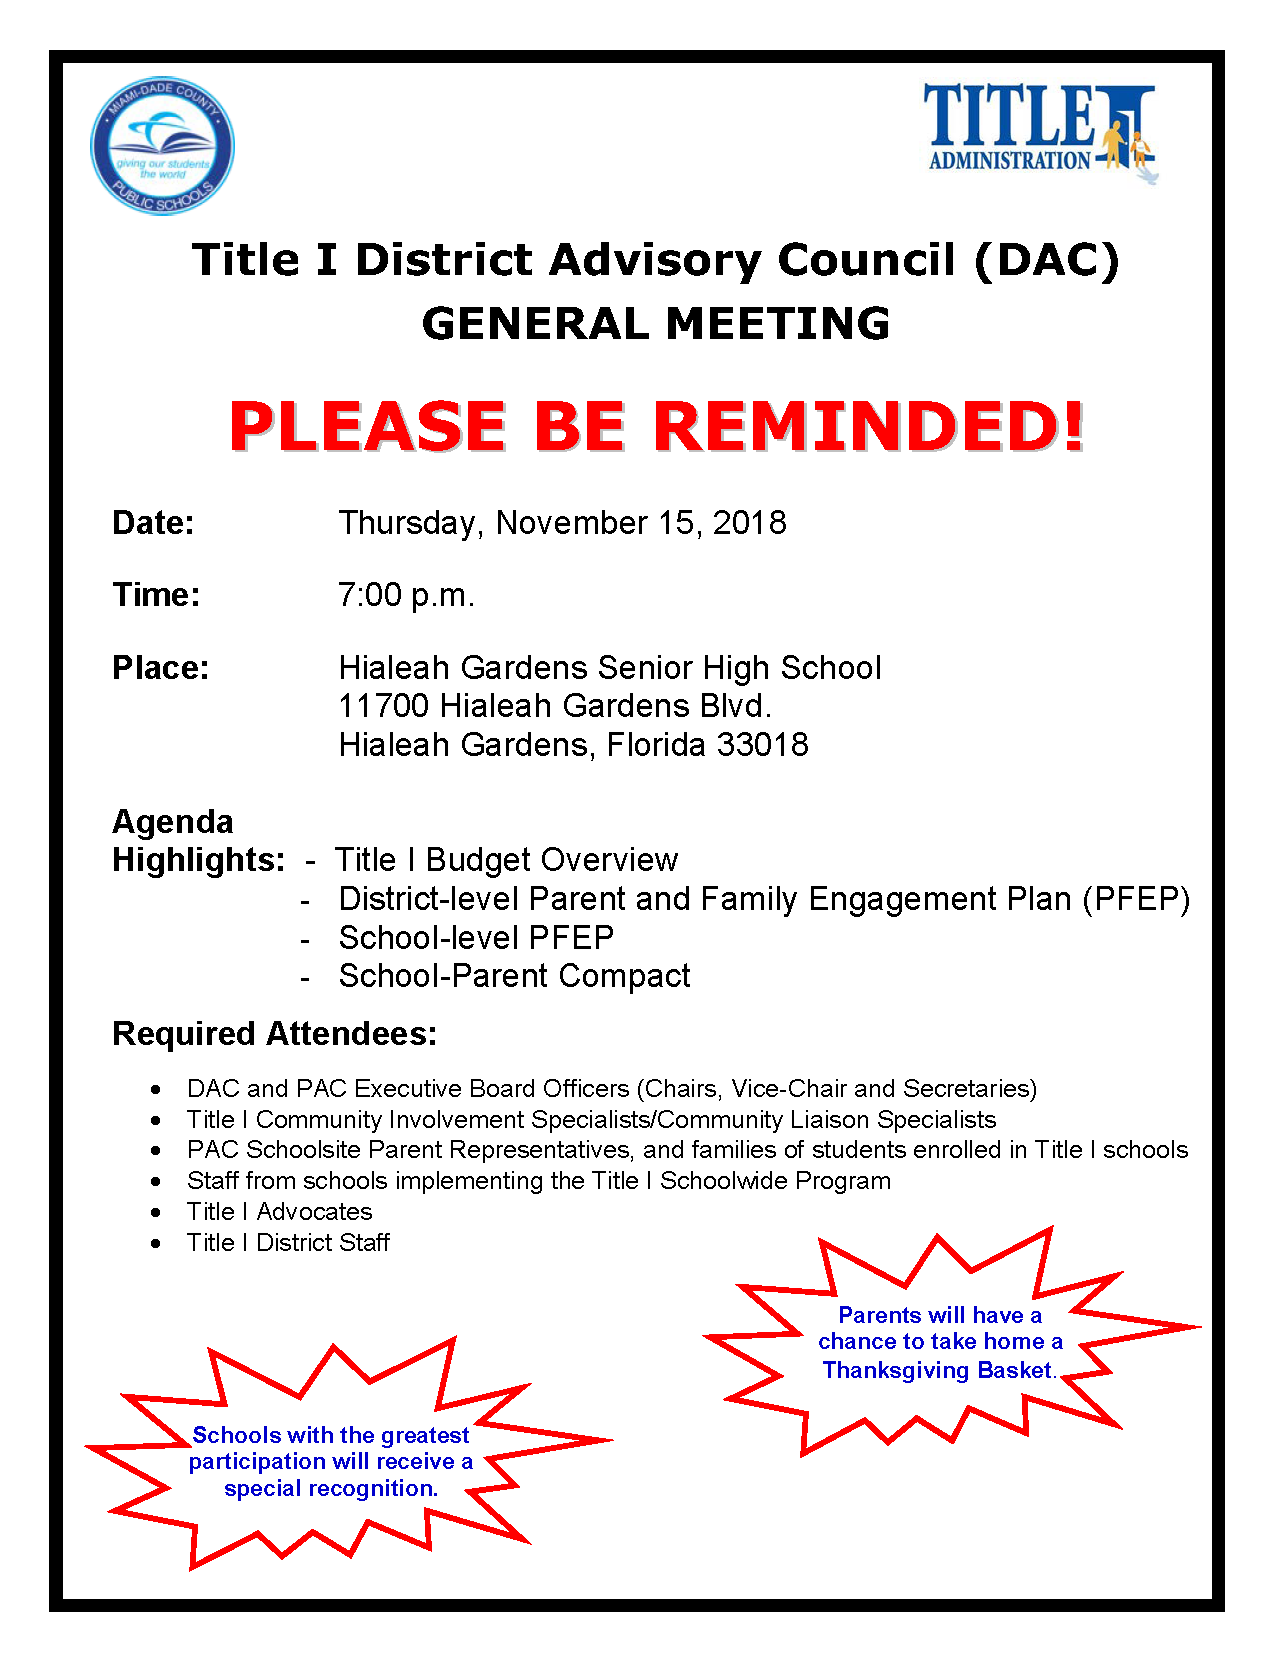 Title I District Advisory Council (DAC) GENERAL MEETING @ Hialeah Gardens Senior High School